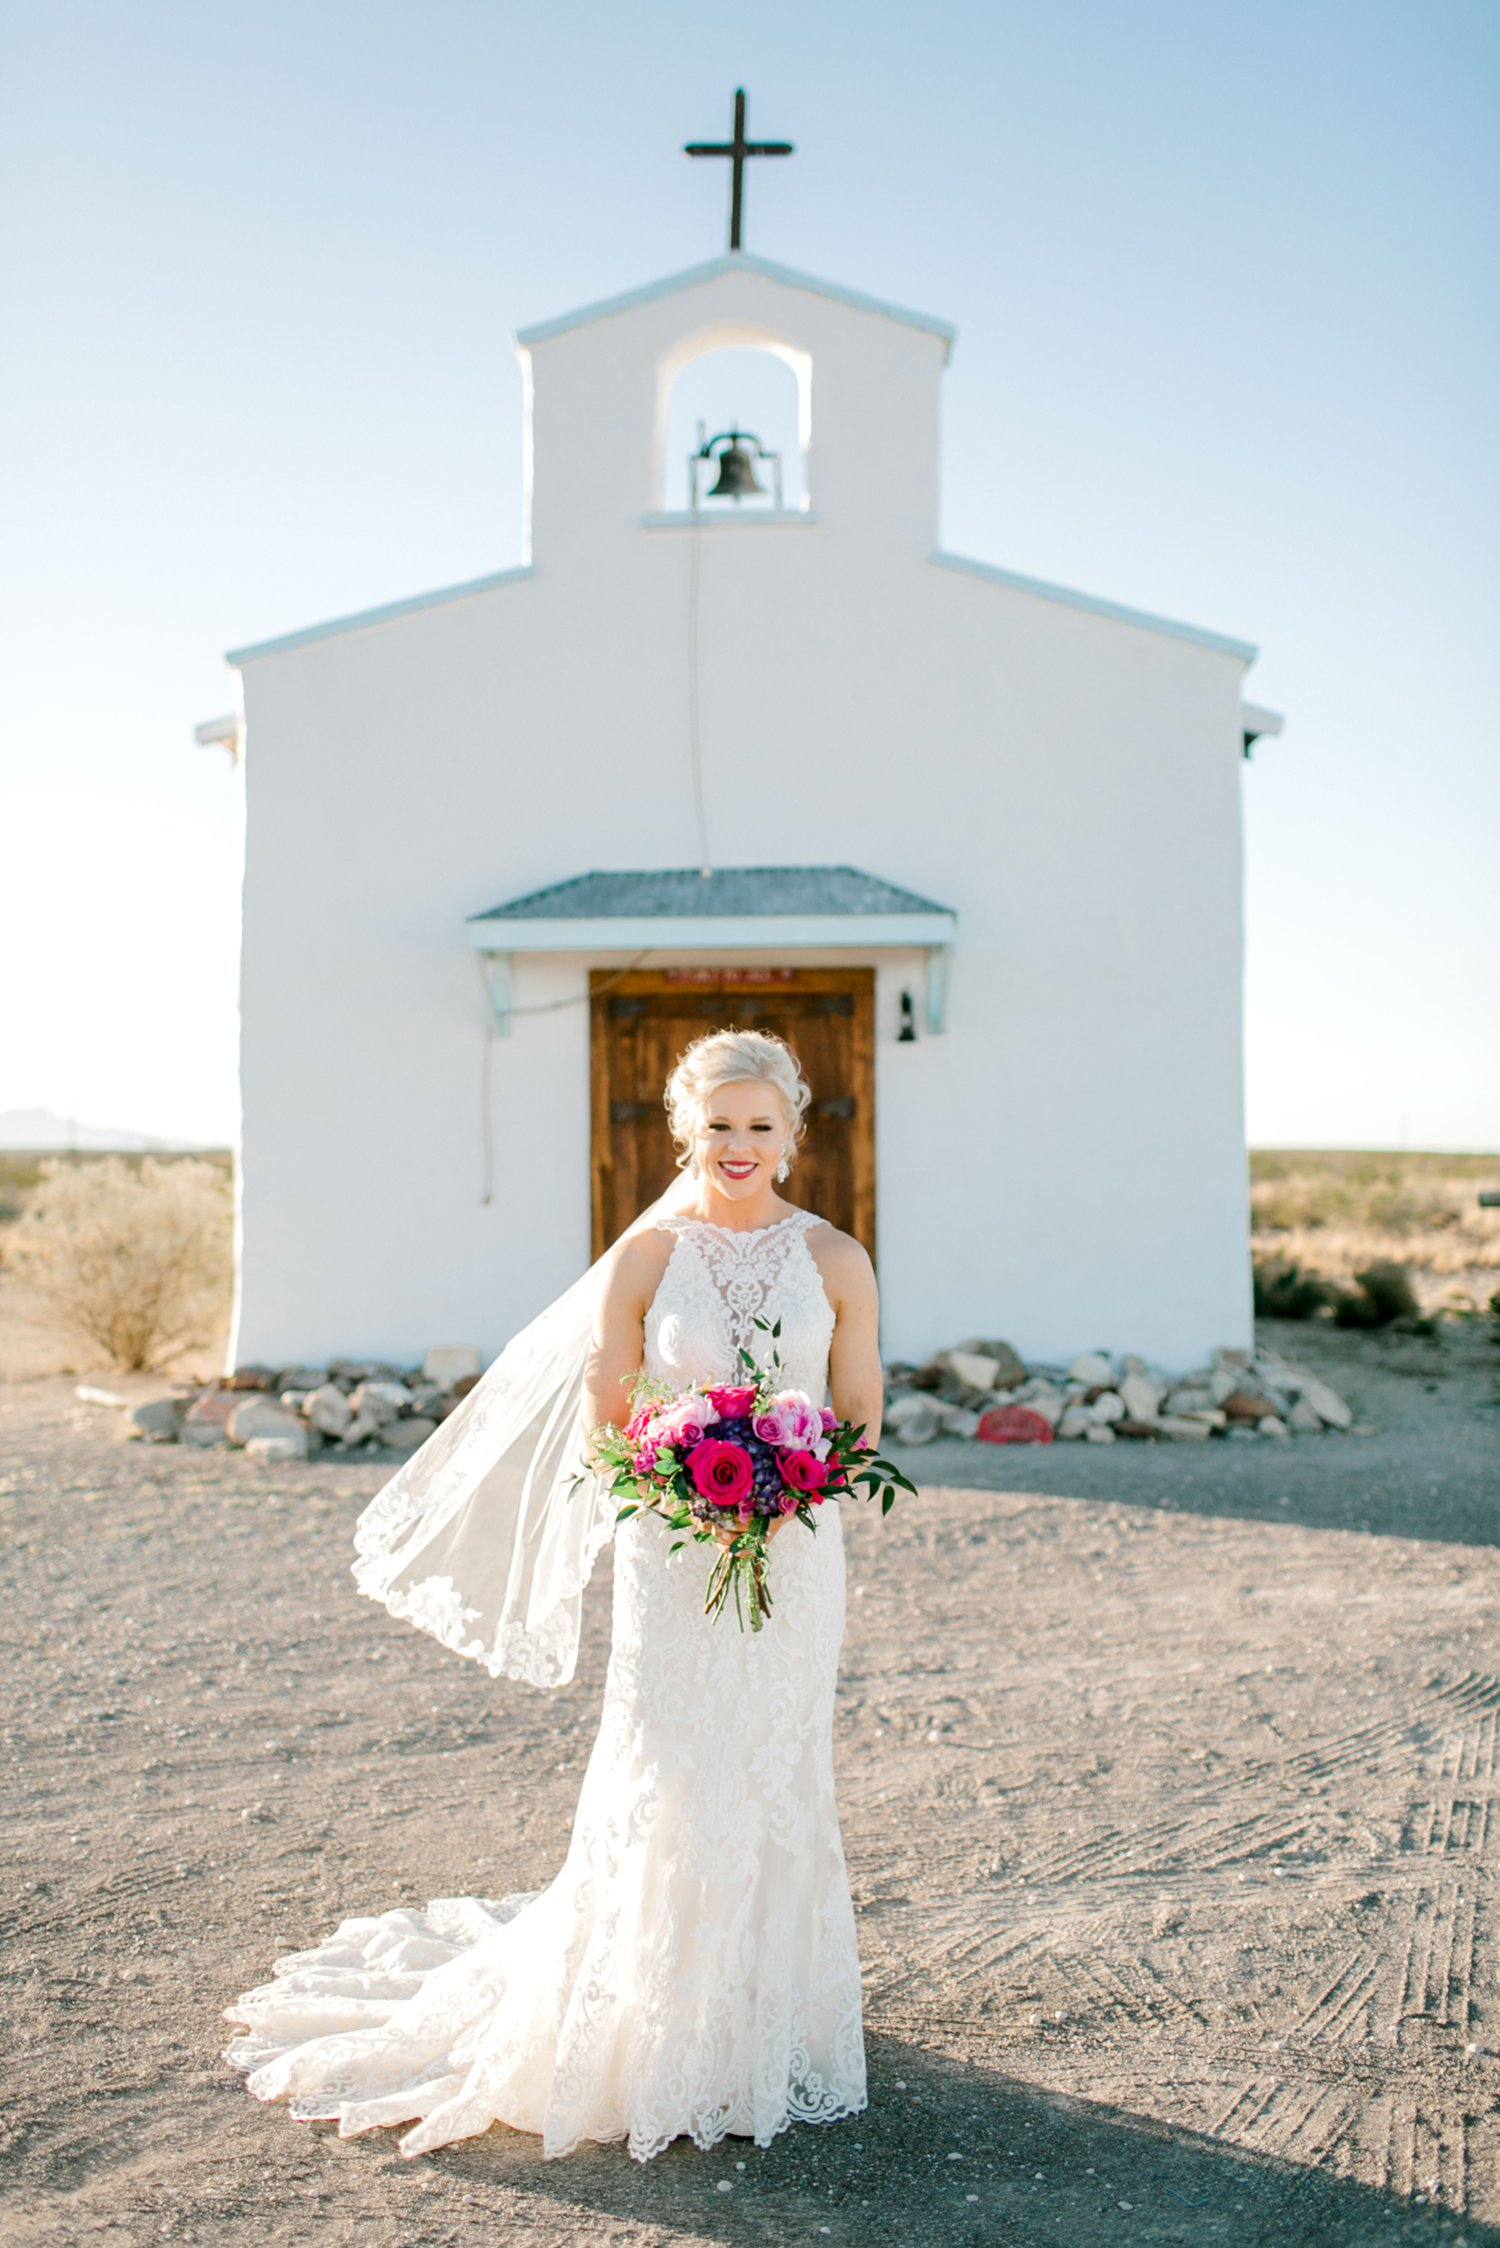 Jenna-evans-bridals-balmorhea-texas-fort-davis-wedding-photographer-lubbock-photographer__0037.jpg